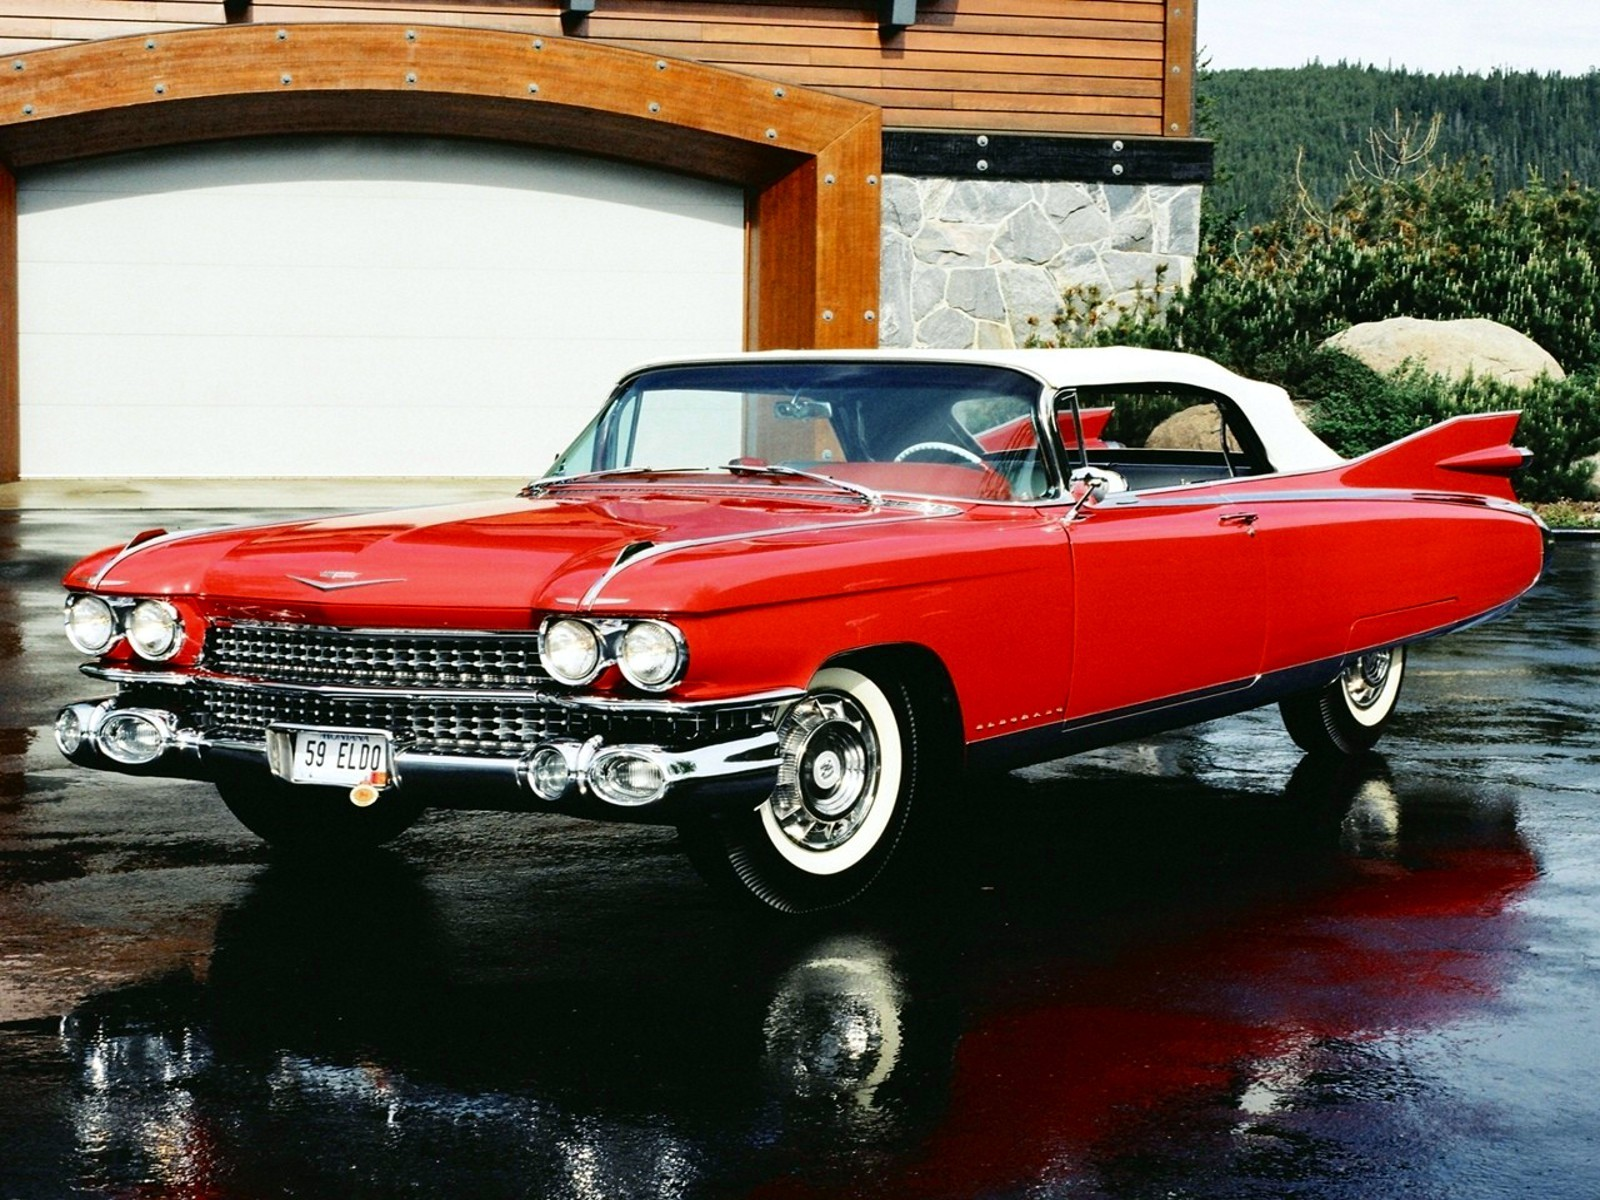 1 1959 Cadillac Eldorado Hd Wallpapers Backgrounds